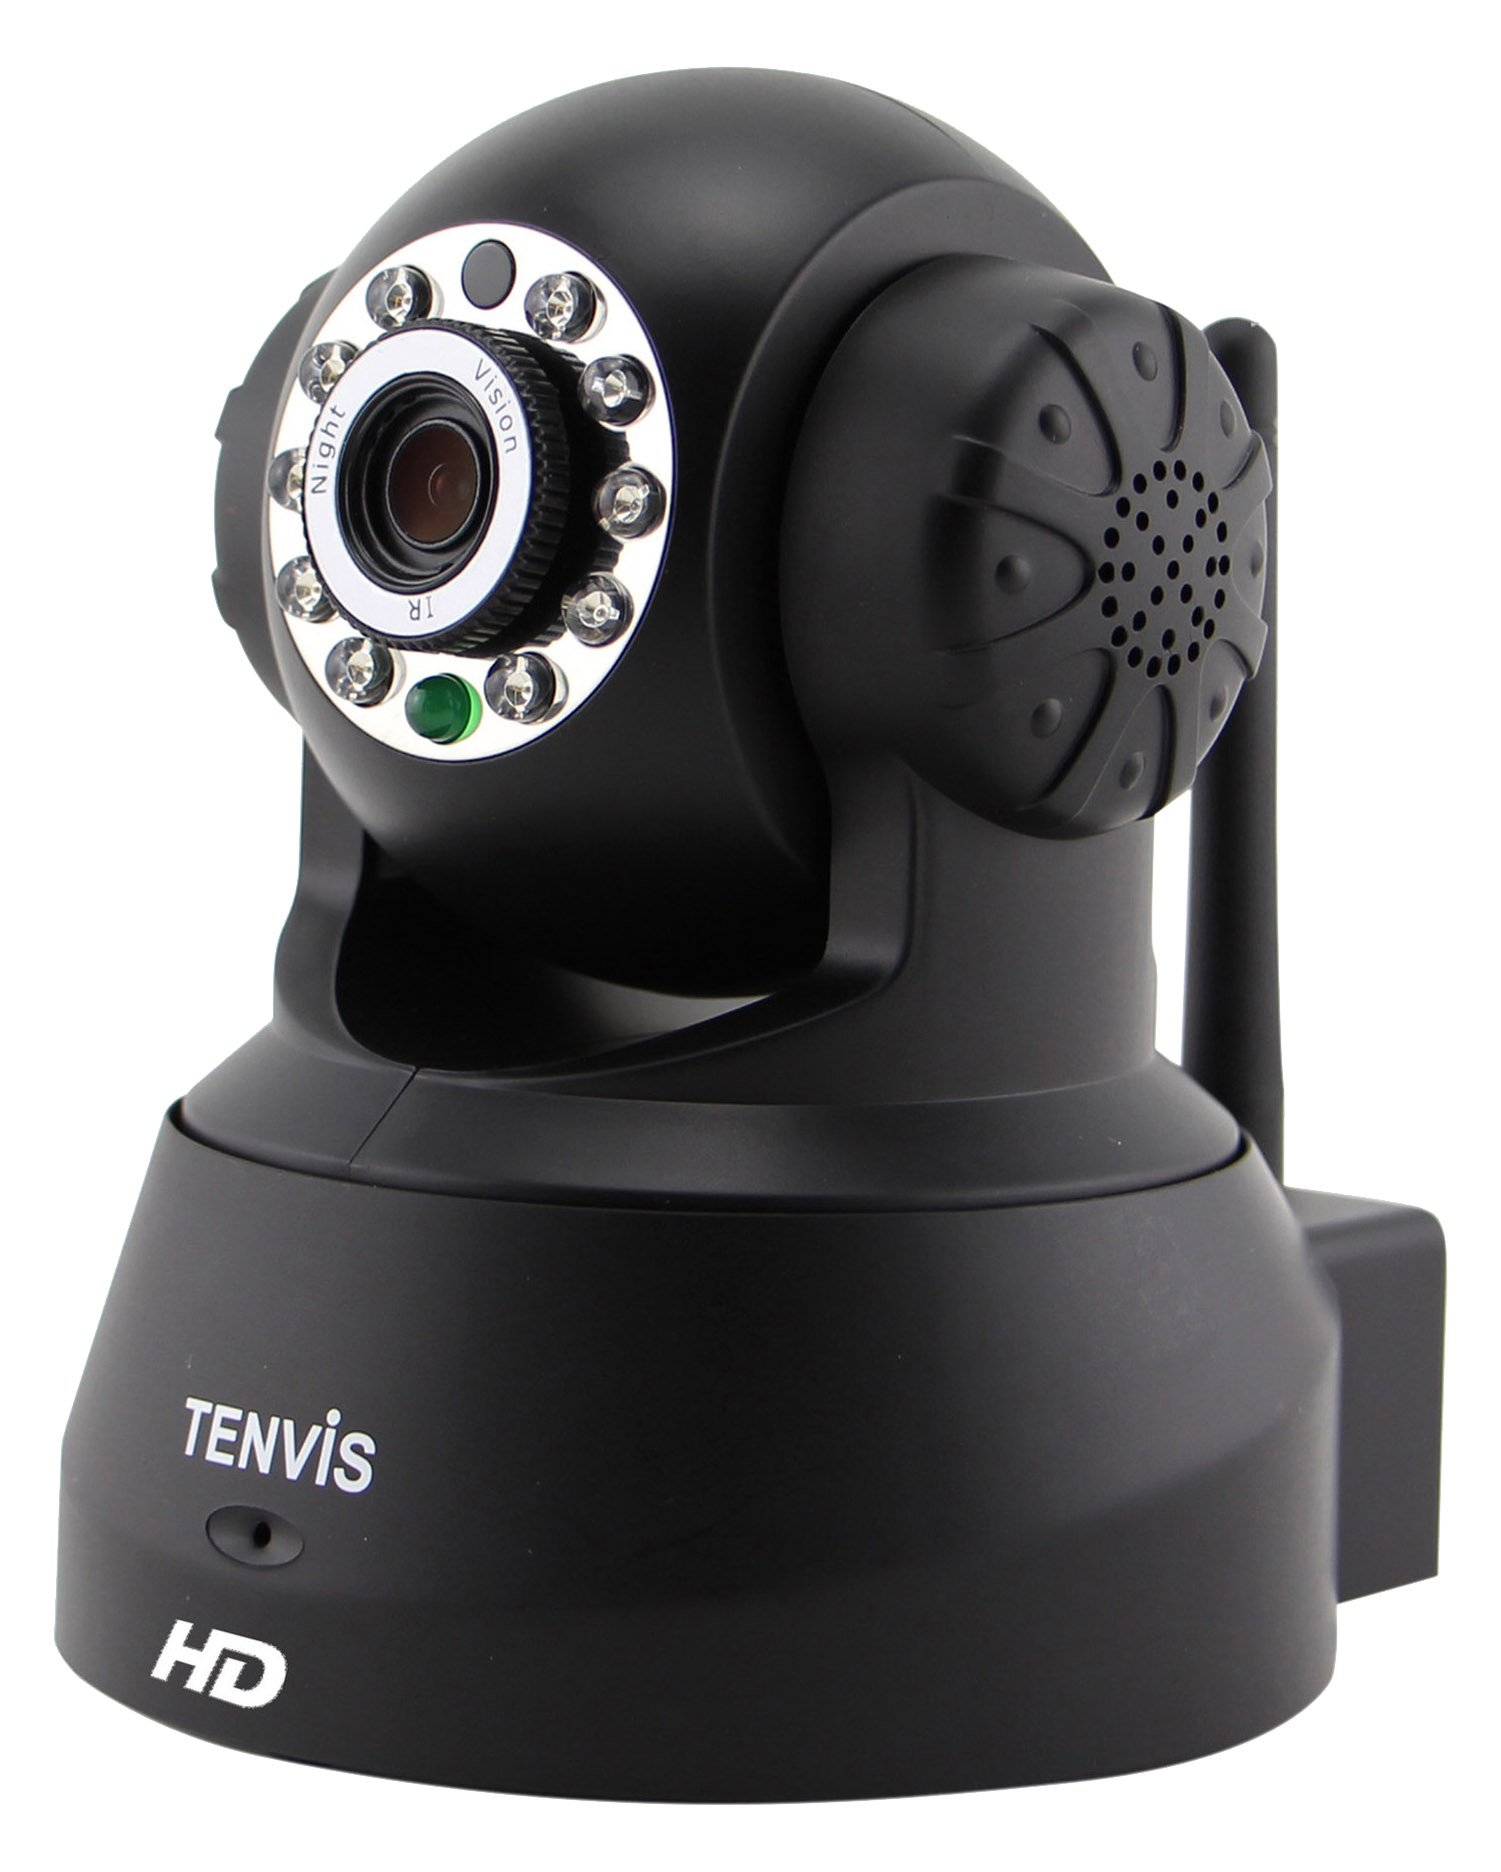 Tenvis JPT3815W-HD Smart Baby Monitor, 720P H.264 Megapixel P2P Home Wi-Fi Wireless Surveillance IP/Network Security Camera, Night Vision, Black